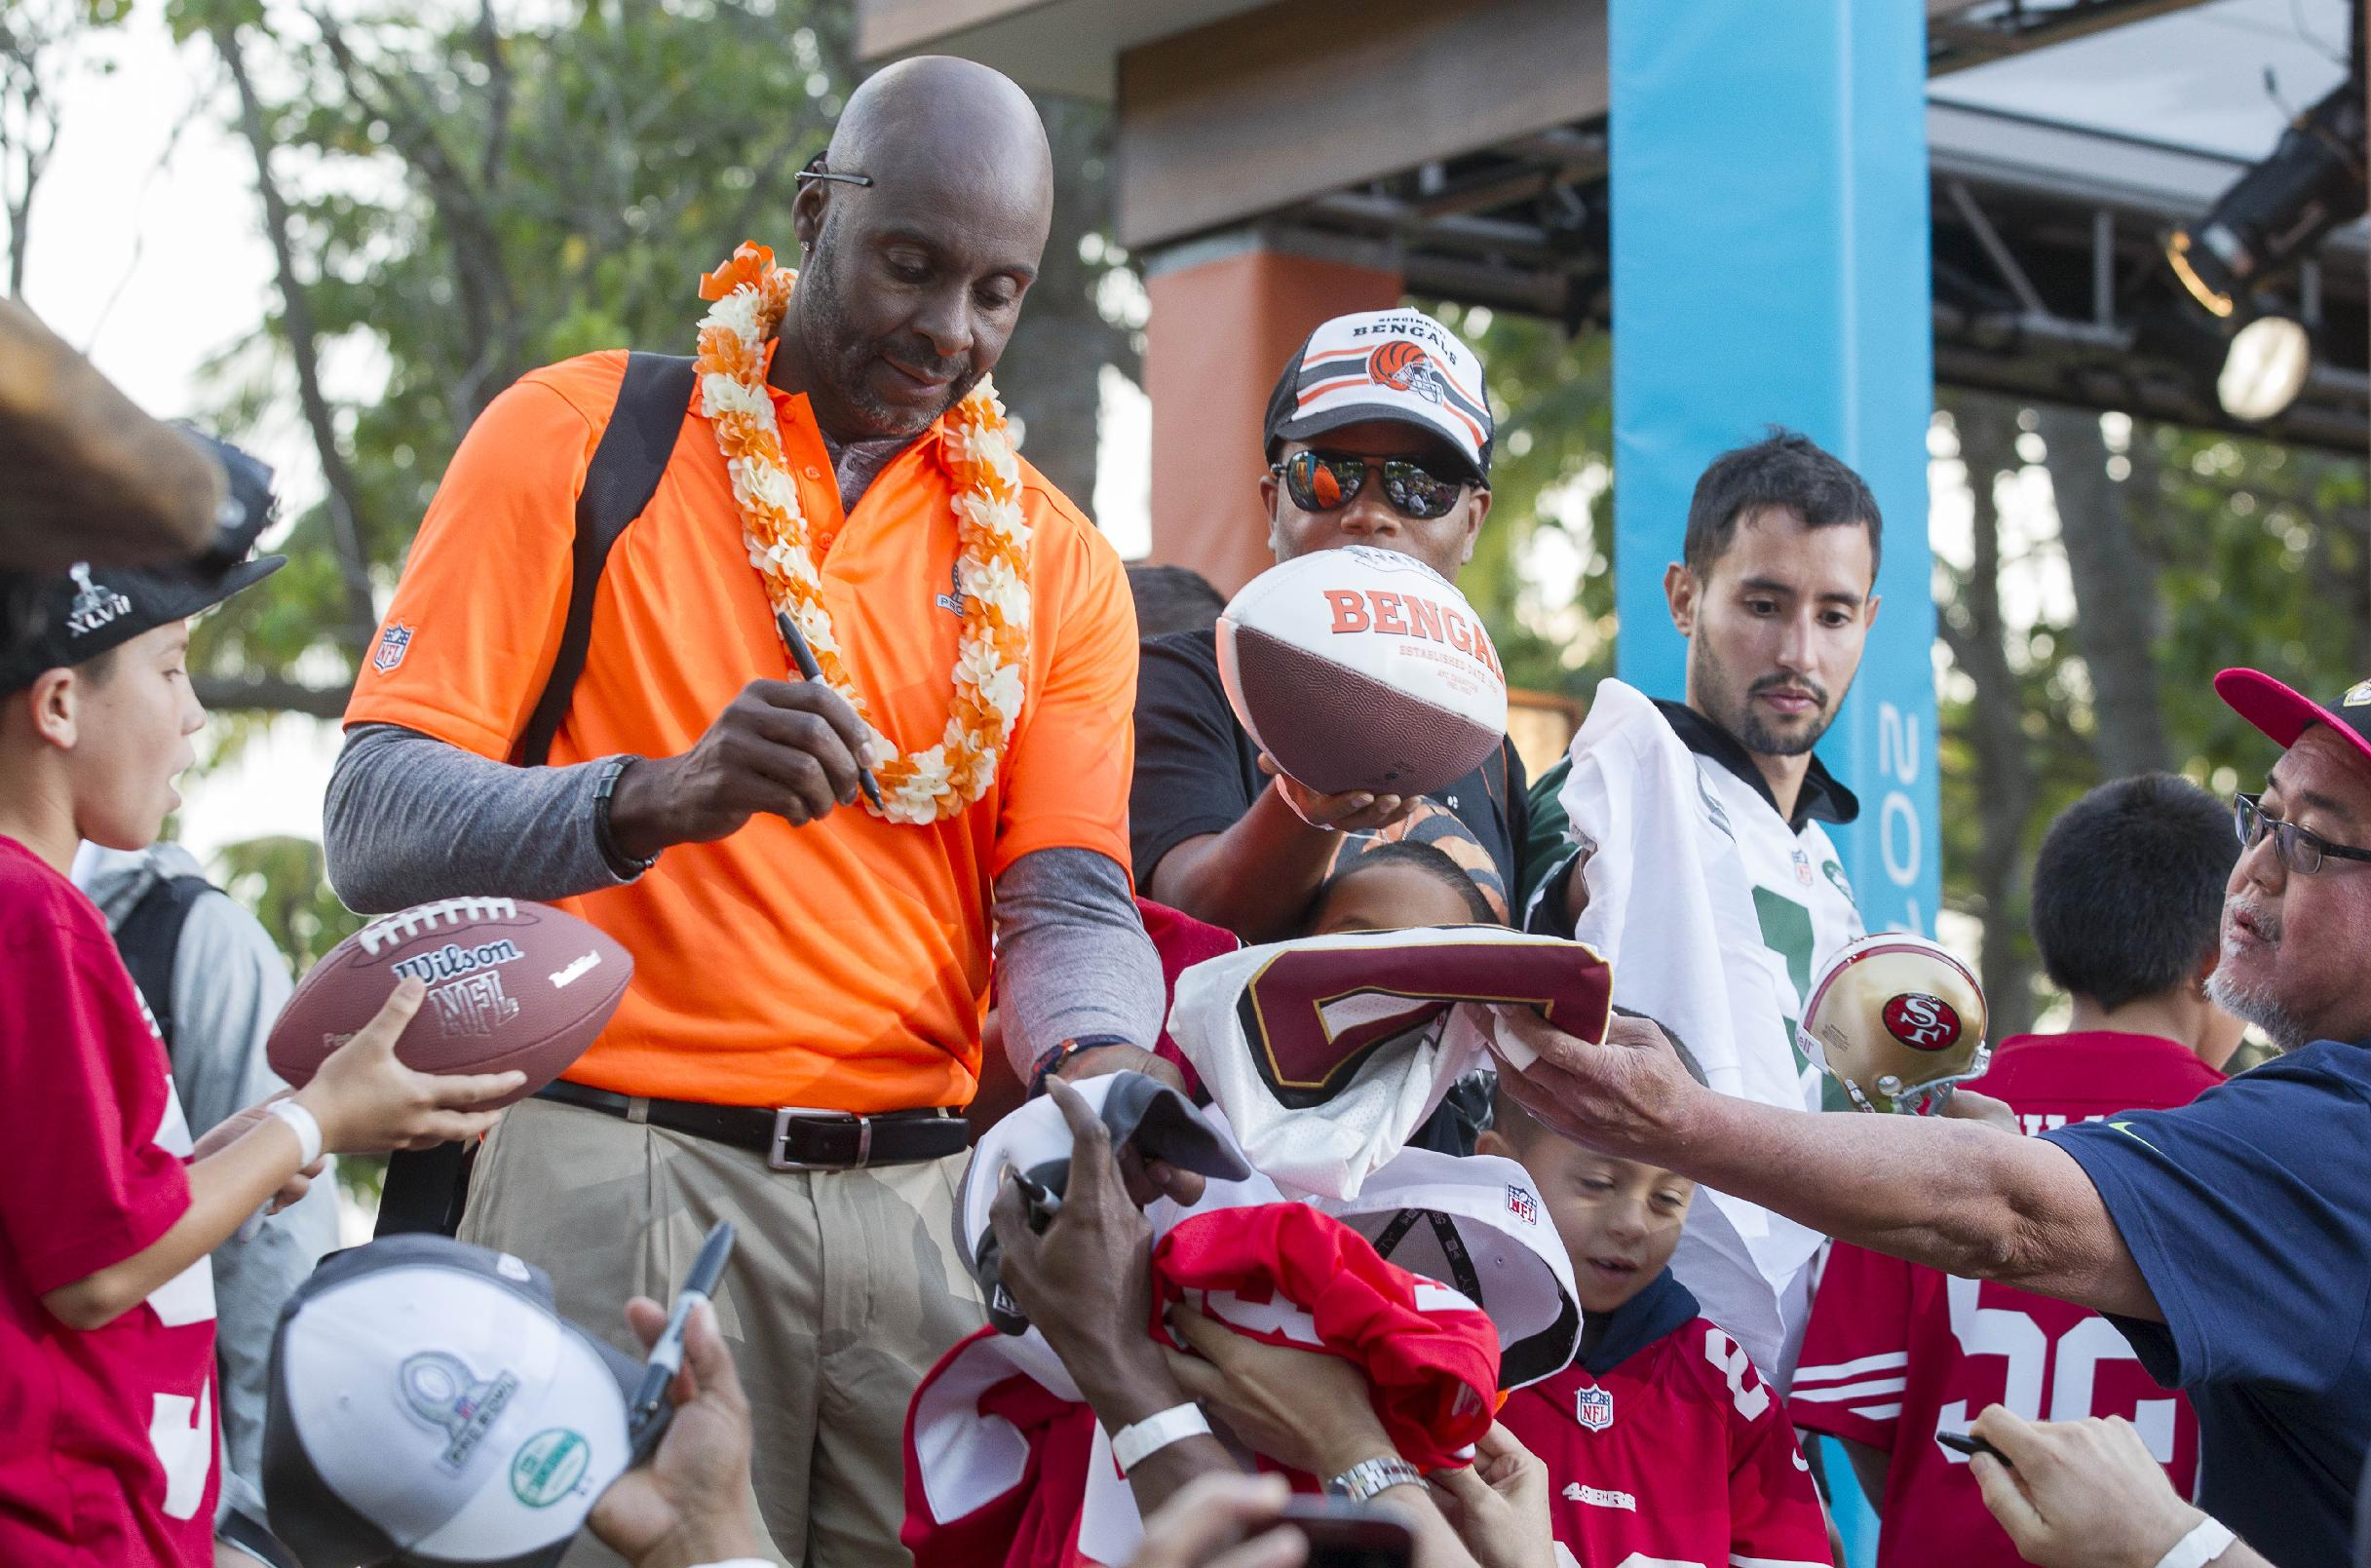 Jerry Rice, left, alumni captain of Team Rice, signs autographs for fans at the end of day two of the NFL football Pro Bowl draft, Wednesday, Jan. 22, 2014, in Kapolei, Hawaii